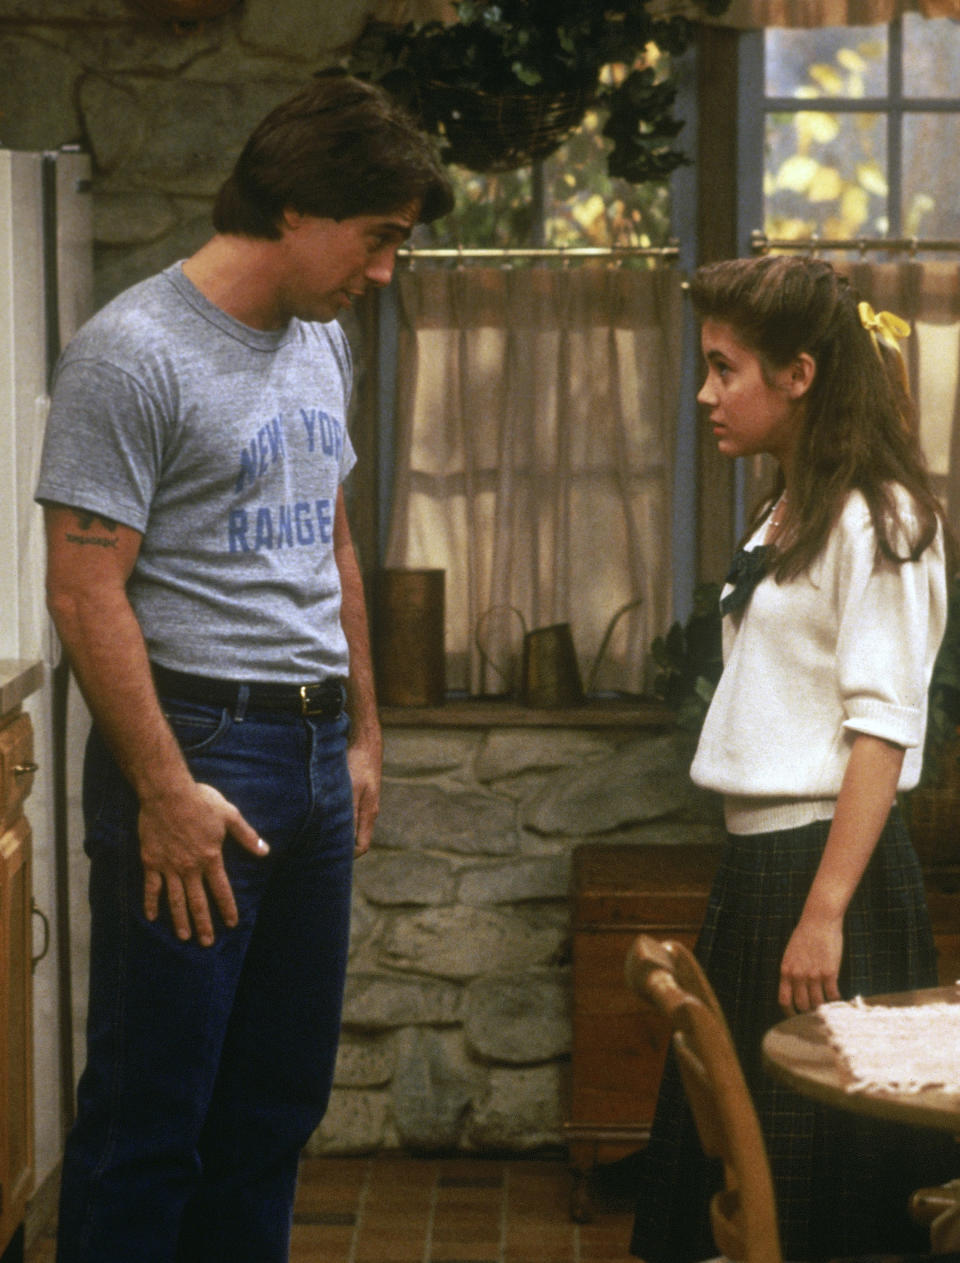 """This image provided by Sony Pictures Television shows Tony Danza, left, as Tony Micelli and Alyssa Milano as Samantha Micelli in a scene from """"Who's The Boss."""" A sequel to the 1980s-'90s sitcom is in the works at Sony Pictures Television, with Danza and Milano set to reprise their father-daughter roles. (Sony Pictures Television via AP)"""